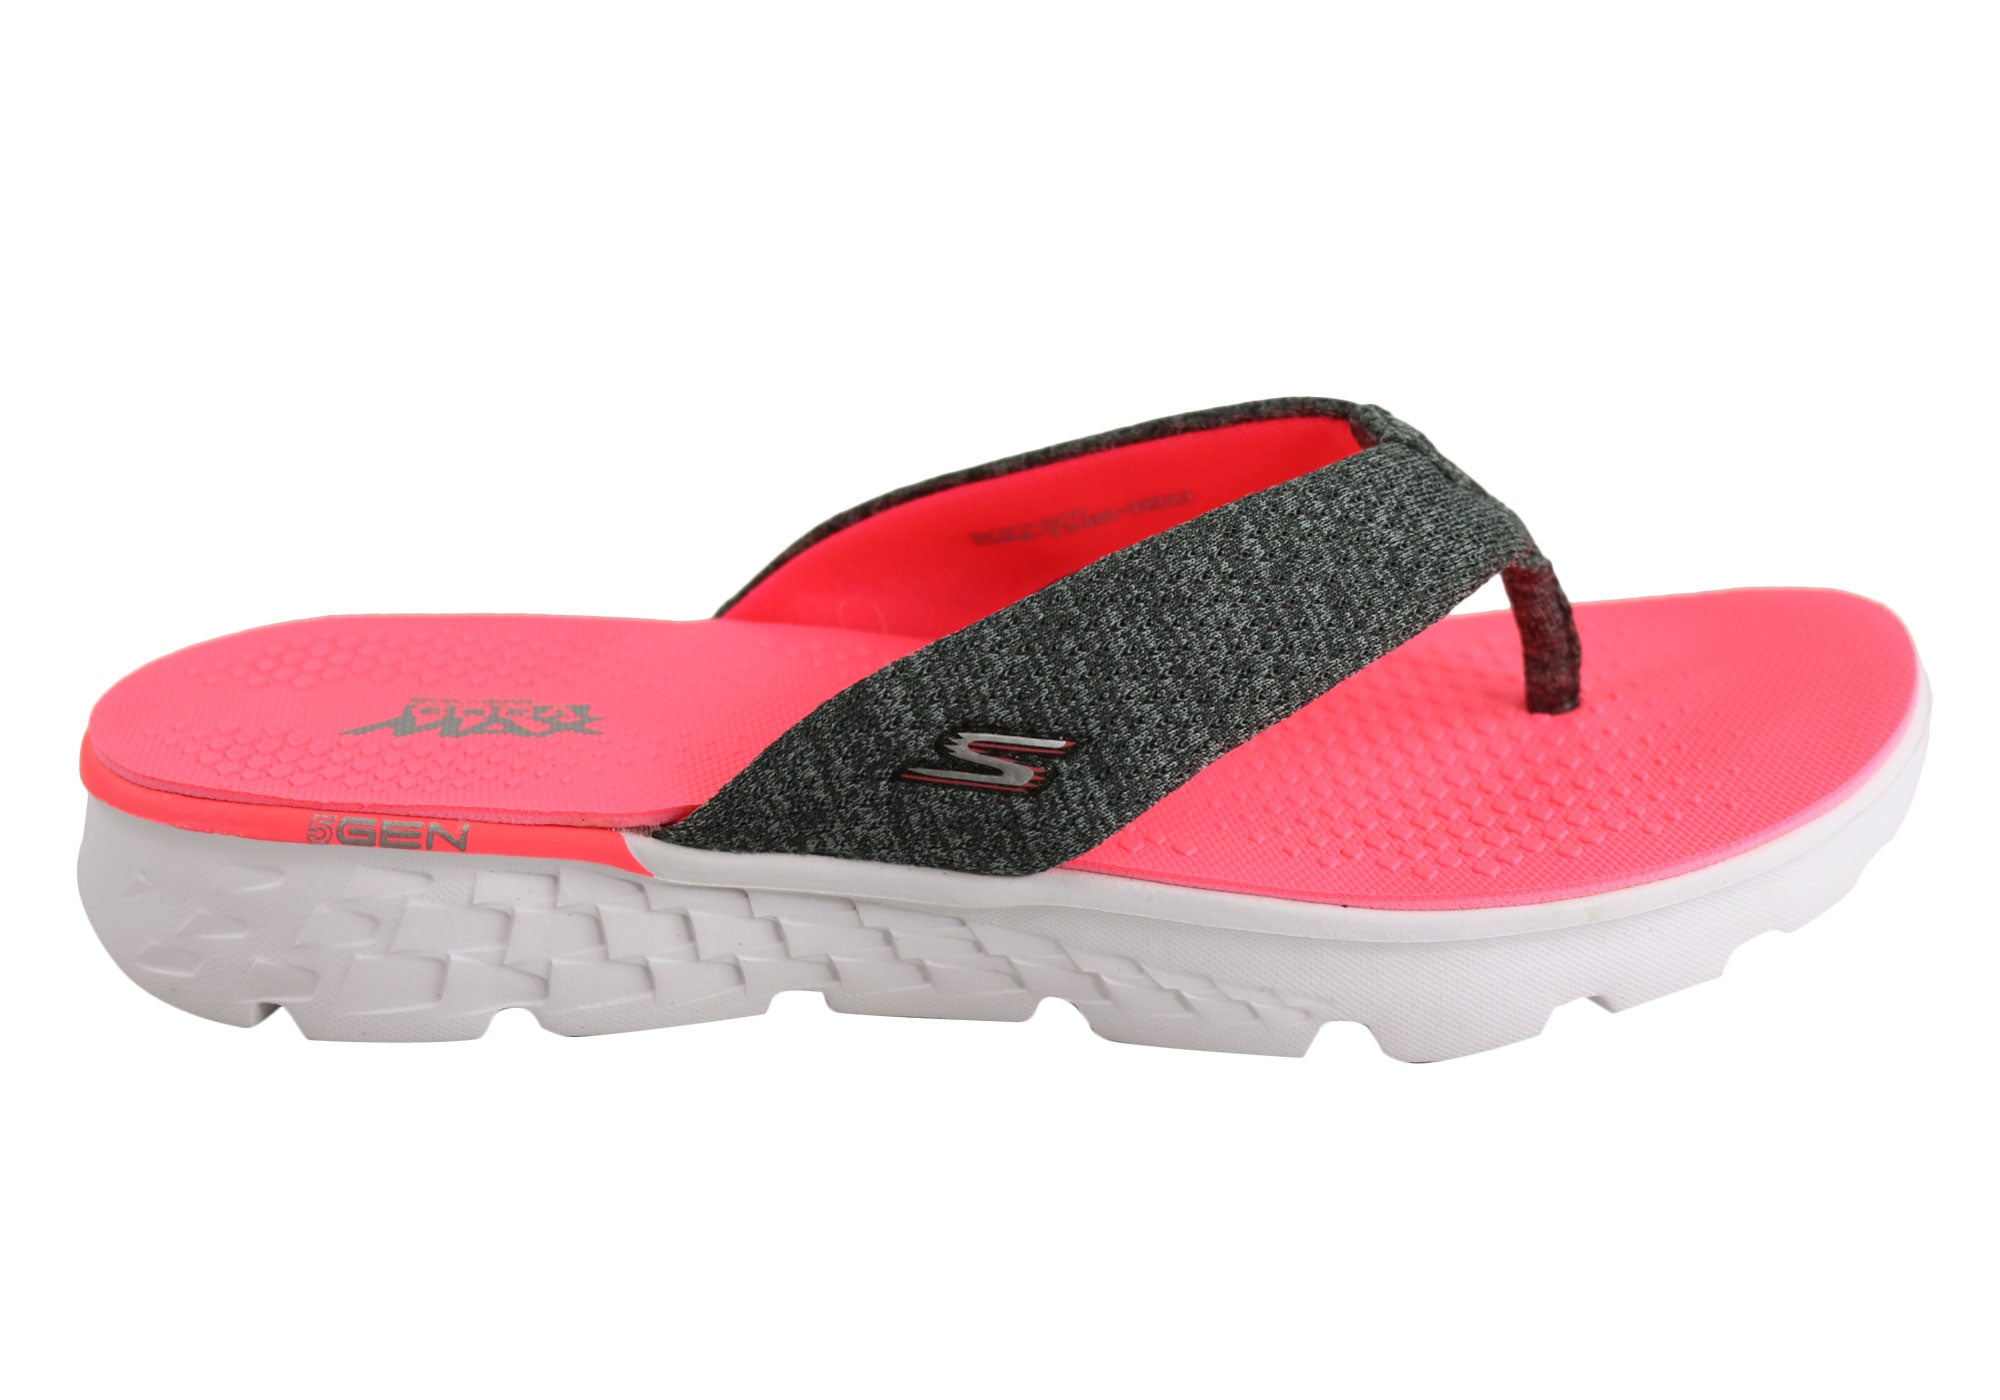 b68e3e285e34 Skechers On The Go 400 Vivacity Womens Comfortable Flat Thong Sandals